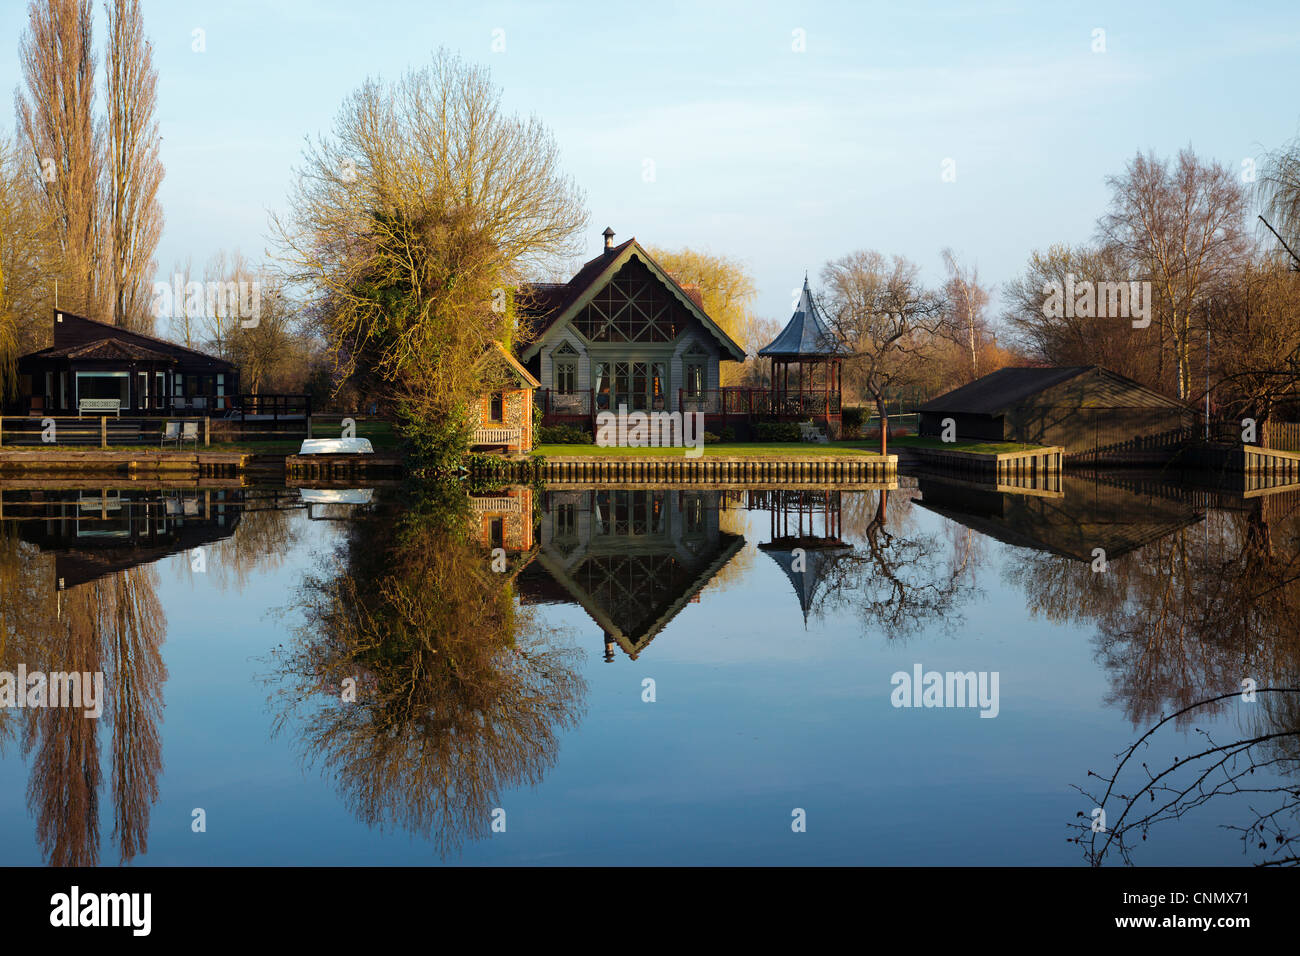 Summer houses reflected in the River Thames near Shiplake Lock in the Chilterns Oxfordshire England UK - Stock Image